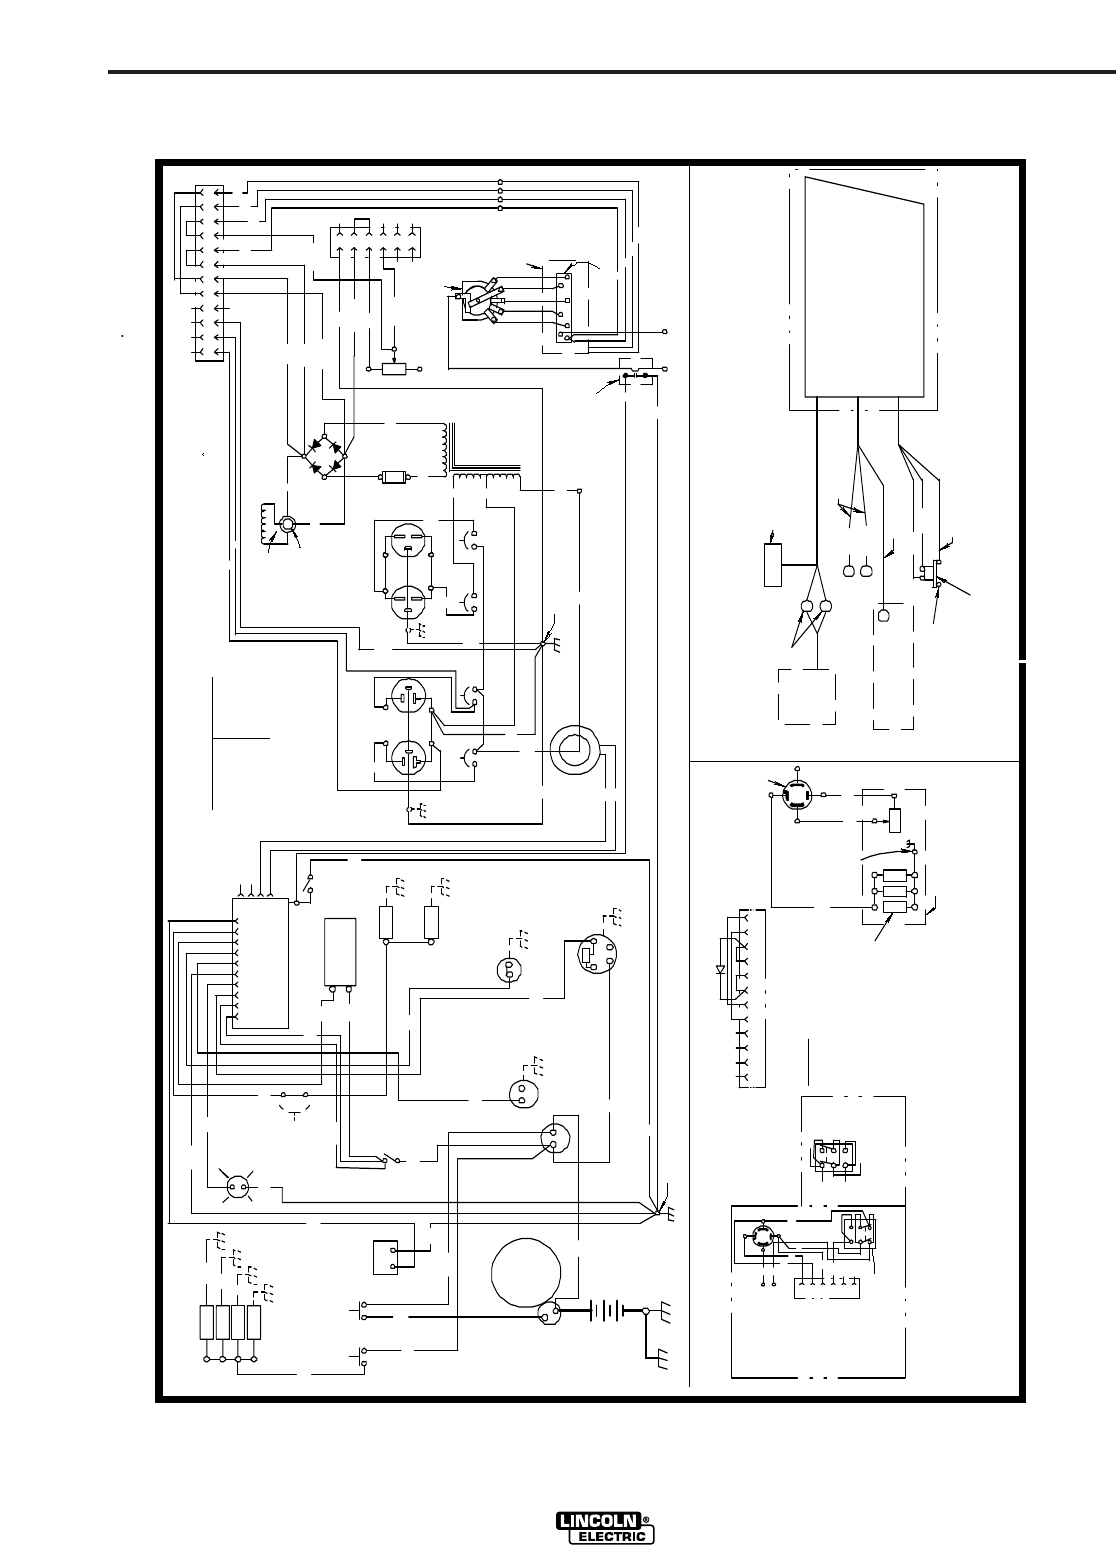 lincoln electric wiring diagram lincoln printable wiring lincoln 300d wiring diagram lincoln home wiring diagrams source